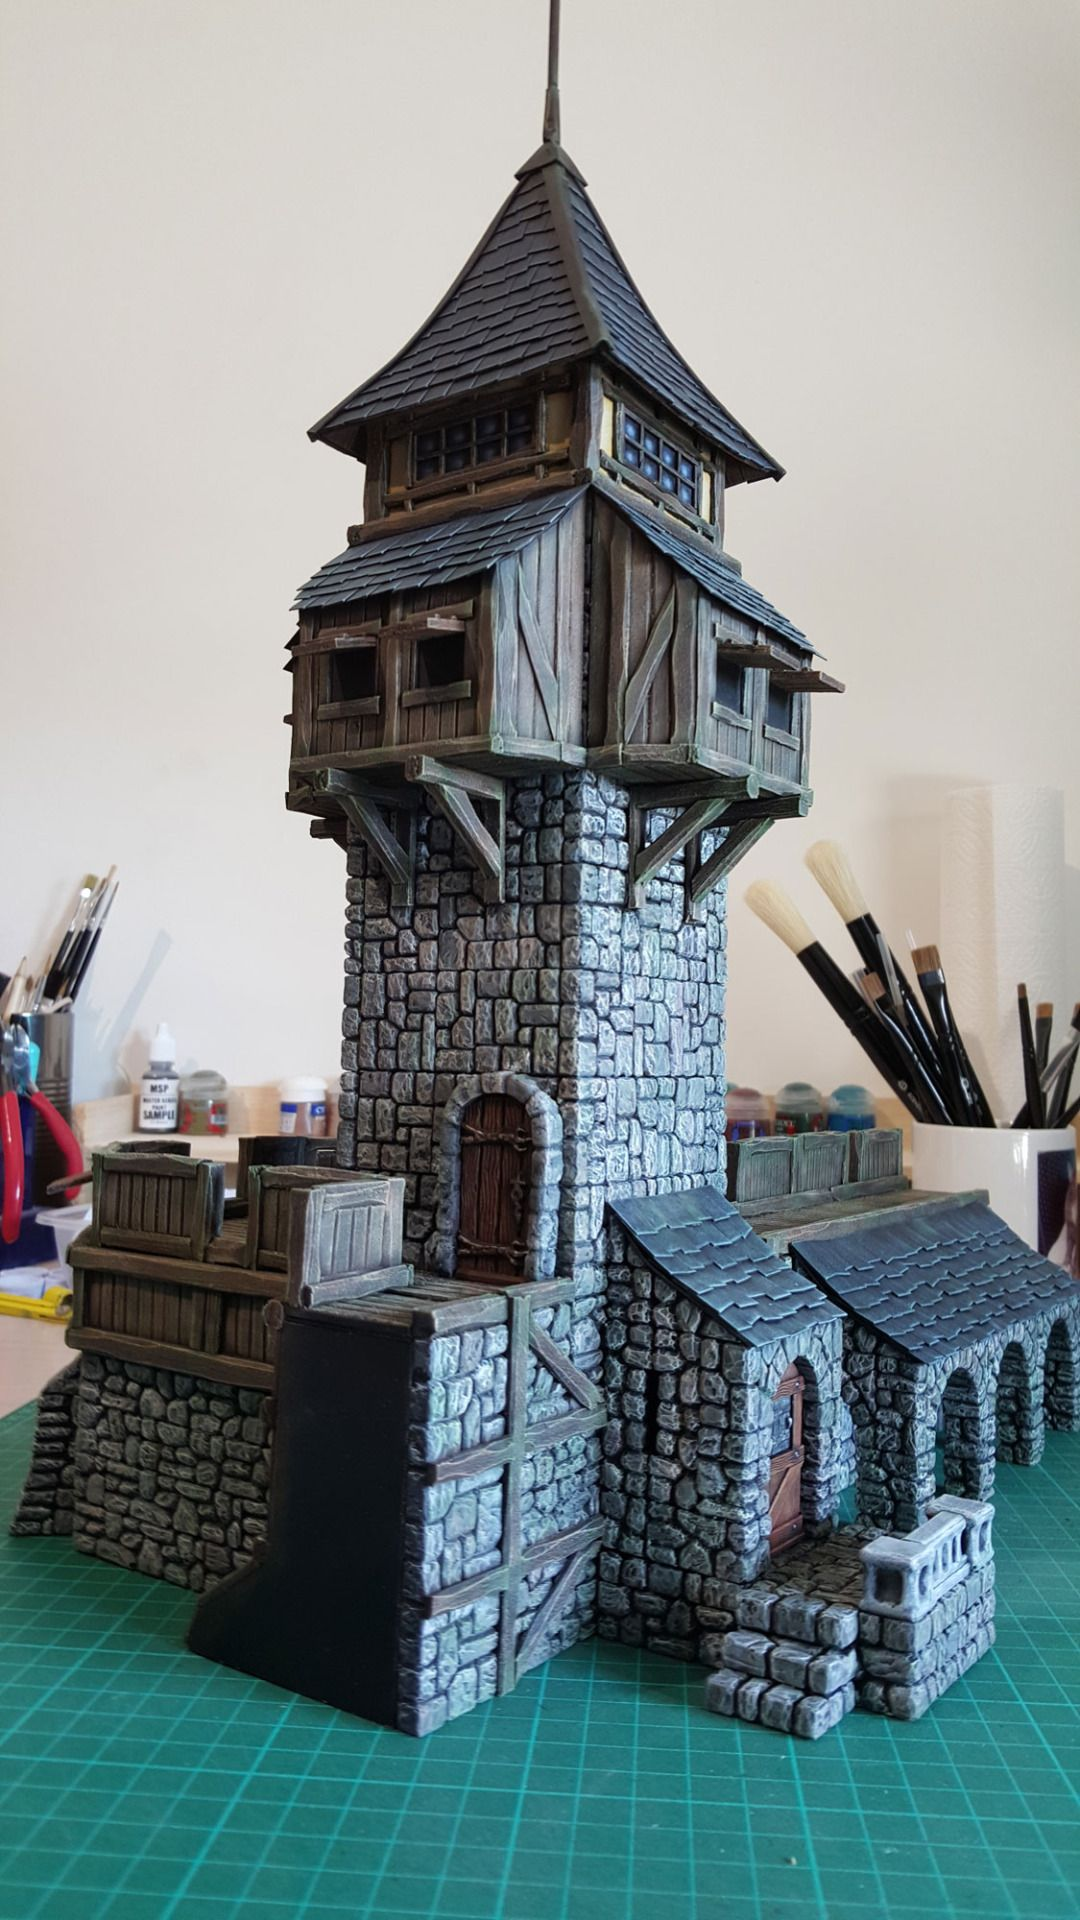 Papercraft Medieval Building - Year of Clean Water